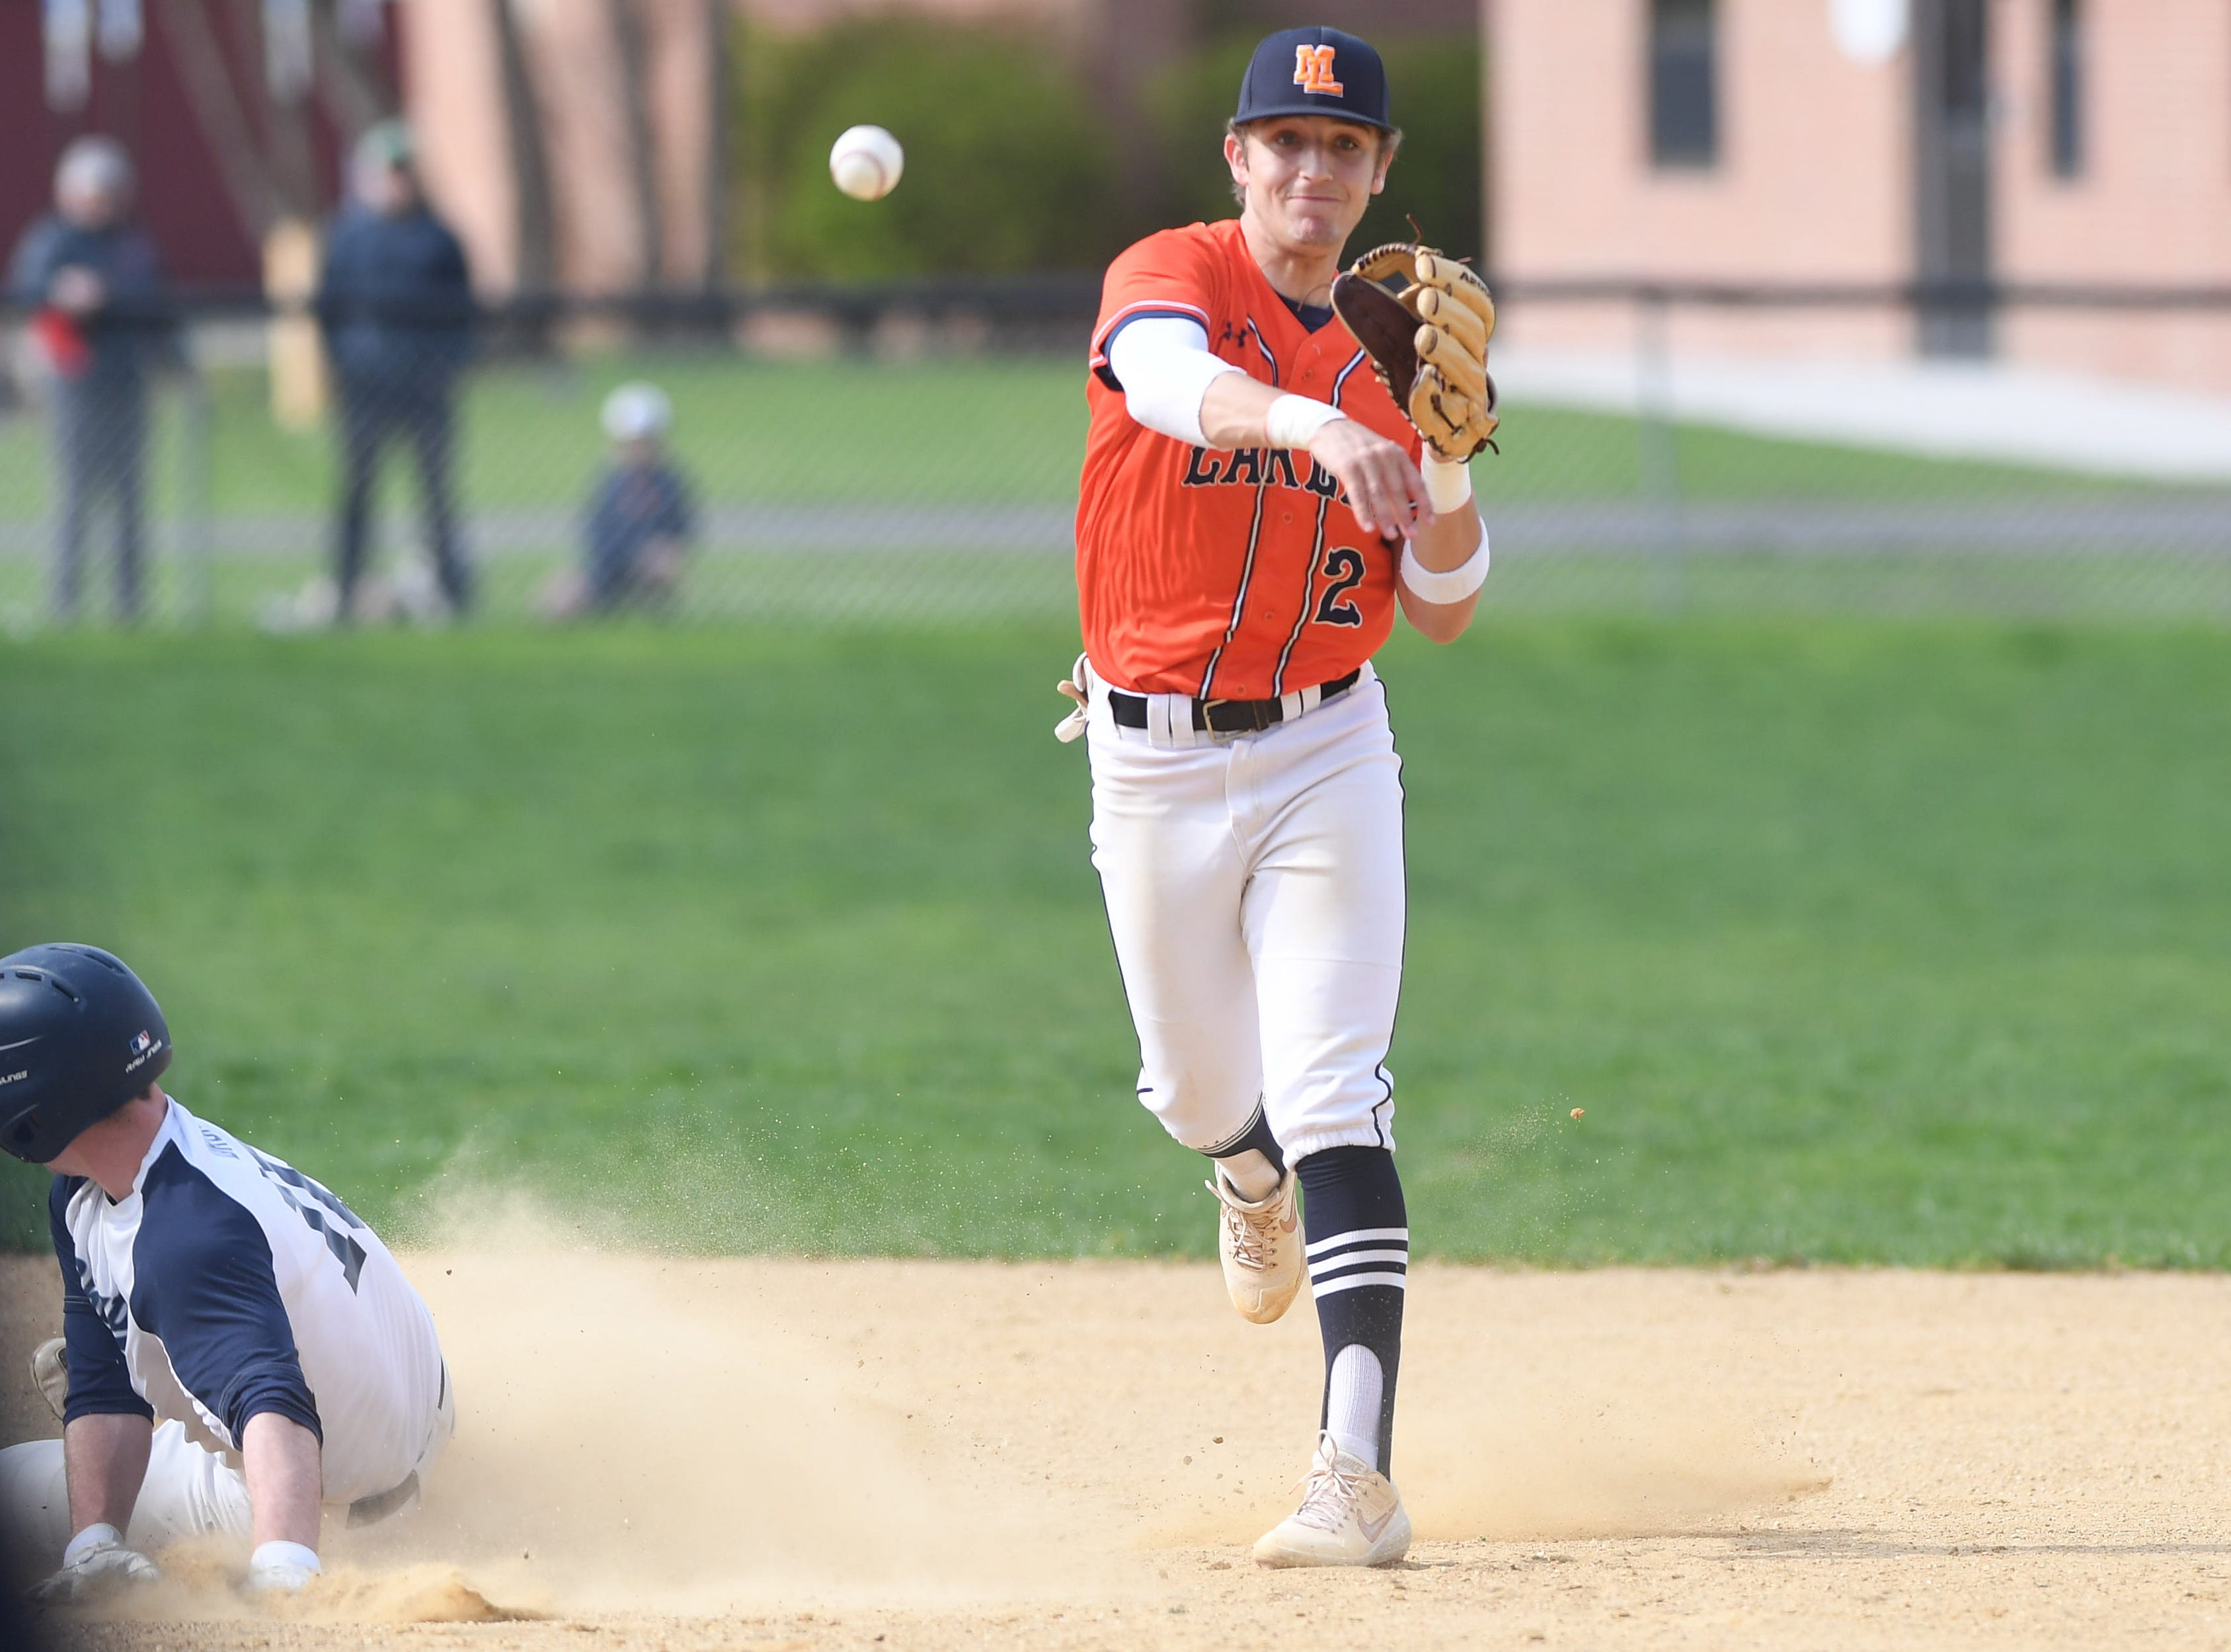 Mountain Lakes baseball at Chatham on Thursday, April 18, 2019. ML #2 Jason Luzzi throws to first after getting the out at second.